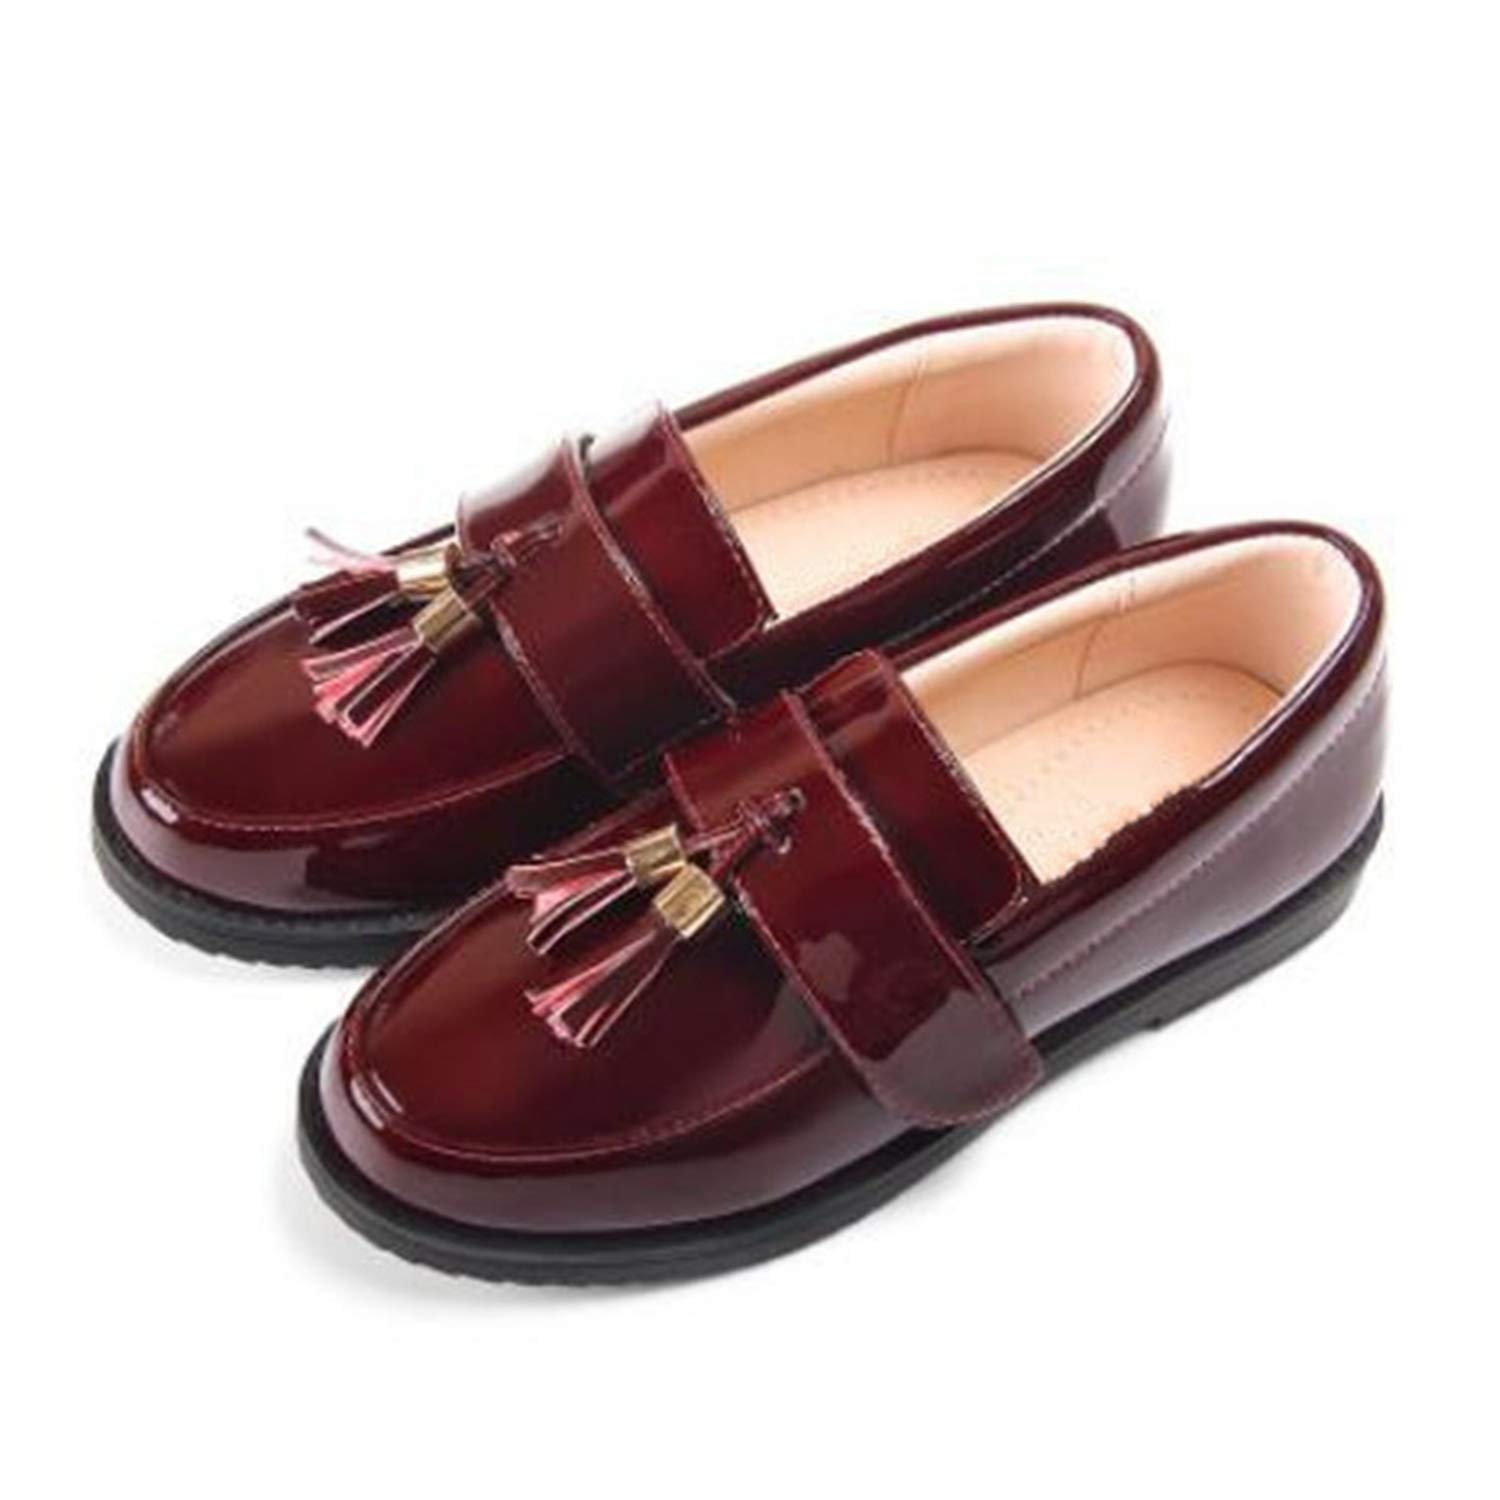 Michael Palmer Spring//Autumn Children Girls Leather Shoes Black Tassel Princess Shoes Student Loafers Baby Toddler Flats Kids Shoes